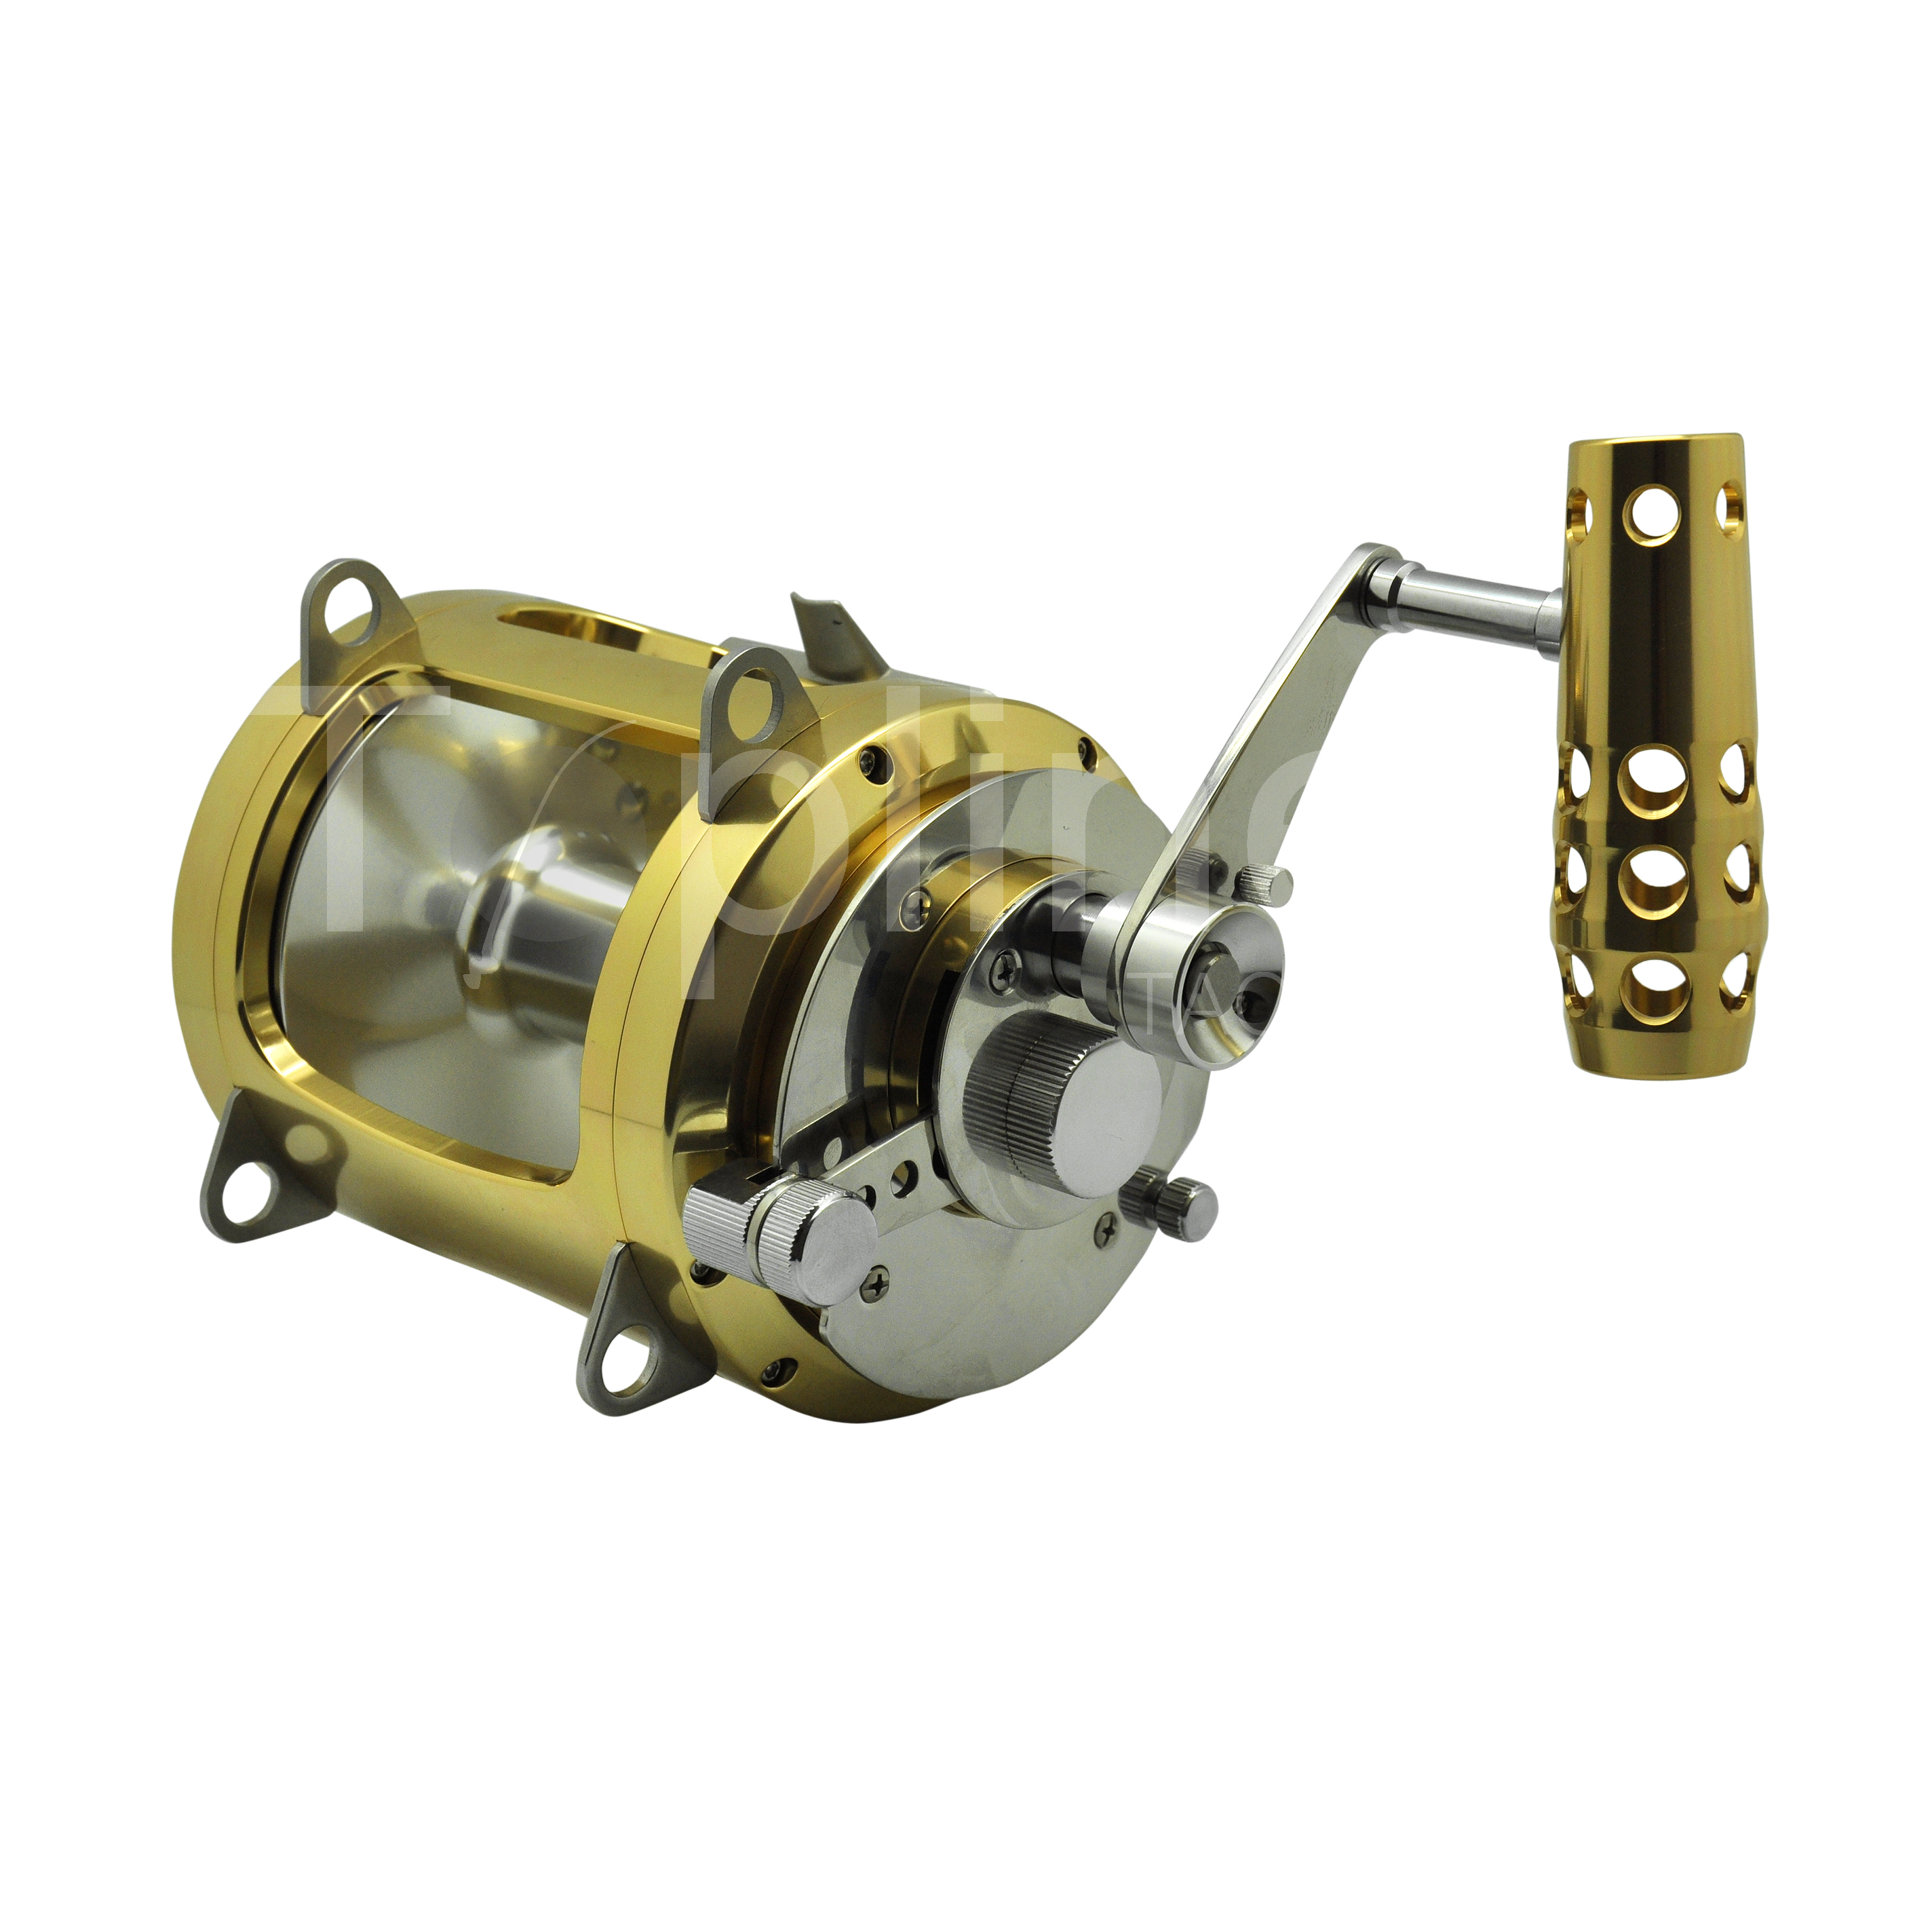 China wholesale big game trolling fishing aluminum saltwater boat trolling fishing reel, Gold